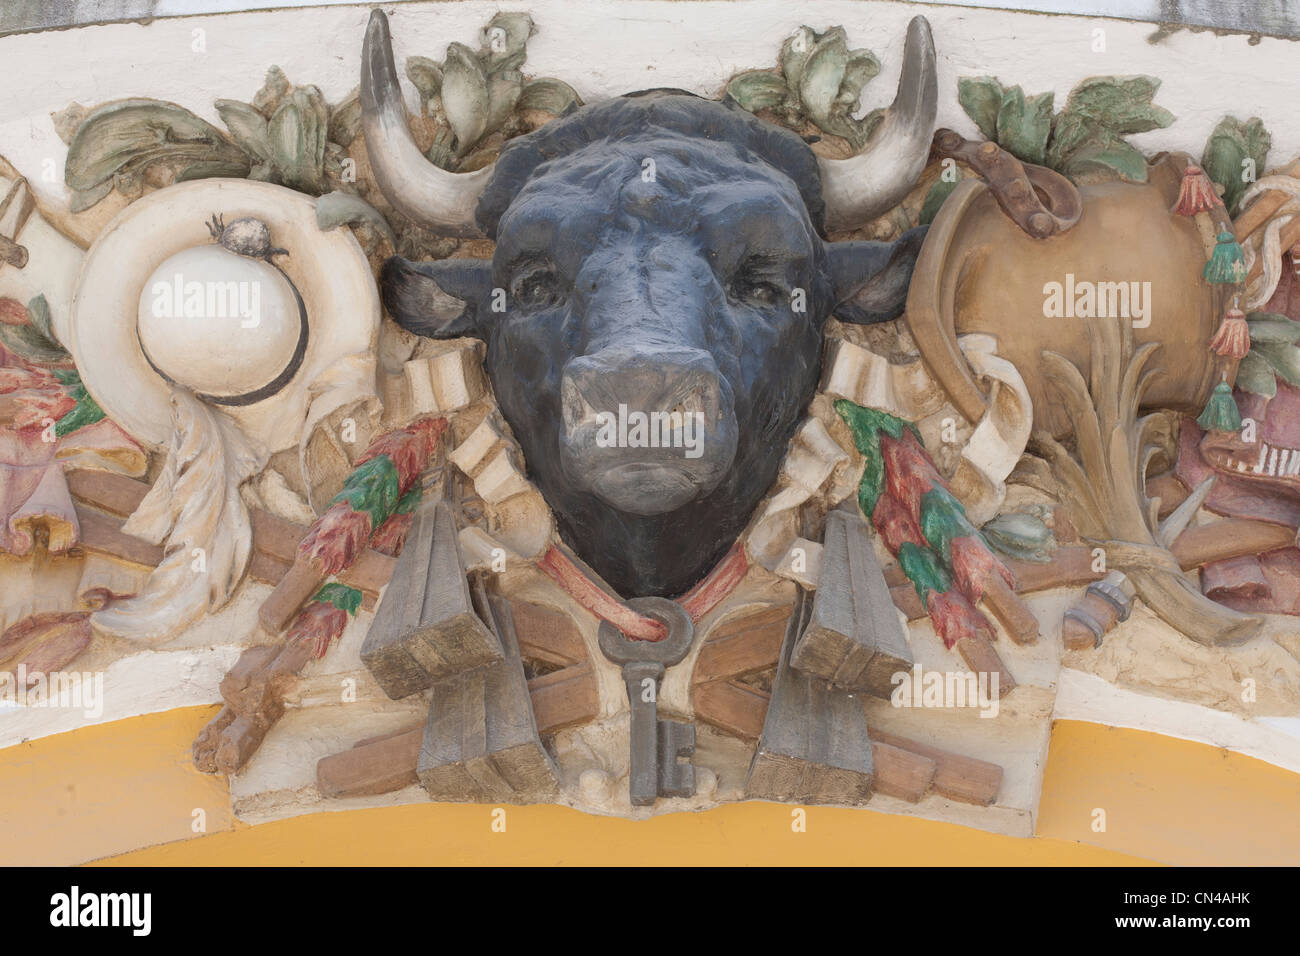 France, Landes, Dax, bullring, detail of the bullring pediment dating 1913 Stock Photo